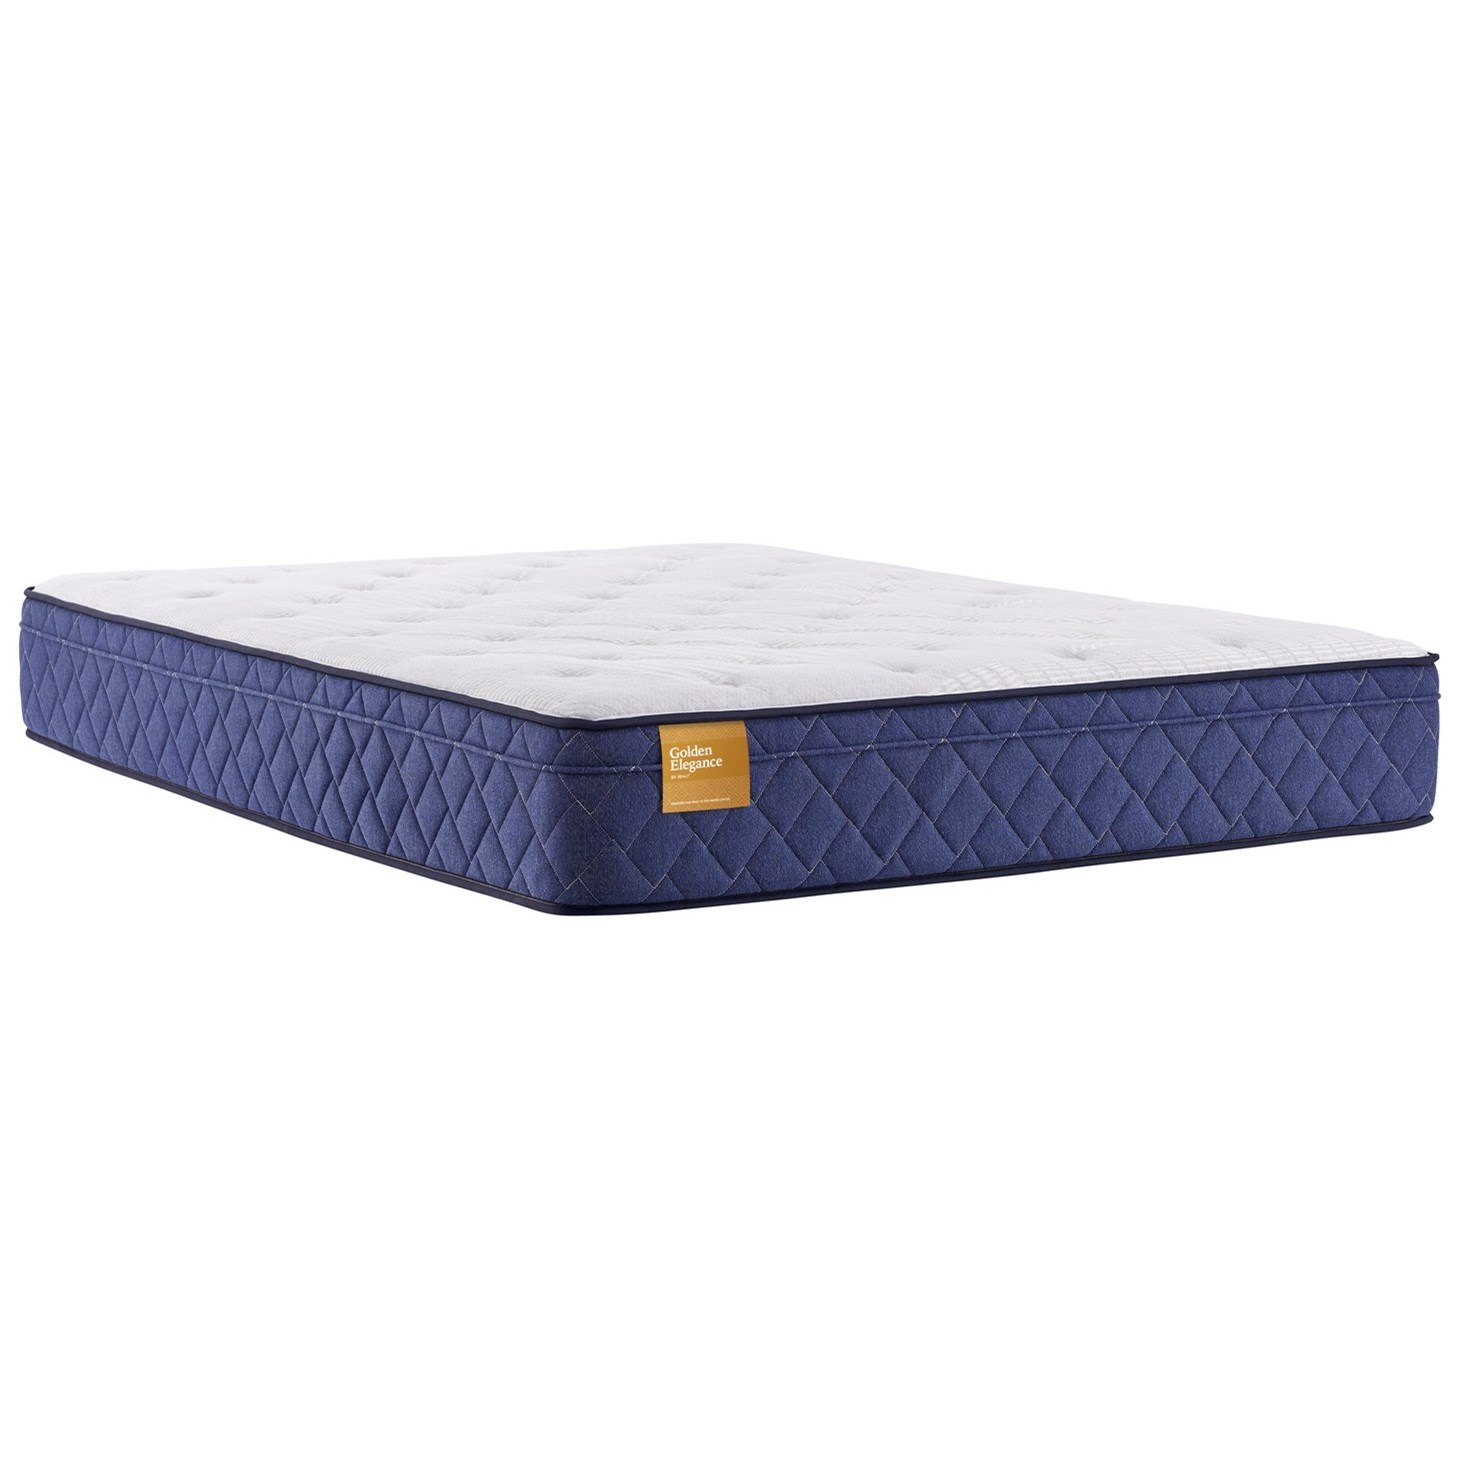 "Beauvior Plush ET B2 Cal King 12"" Plush Euro Top Mattress by Sealy at Beck's Furniture"